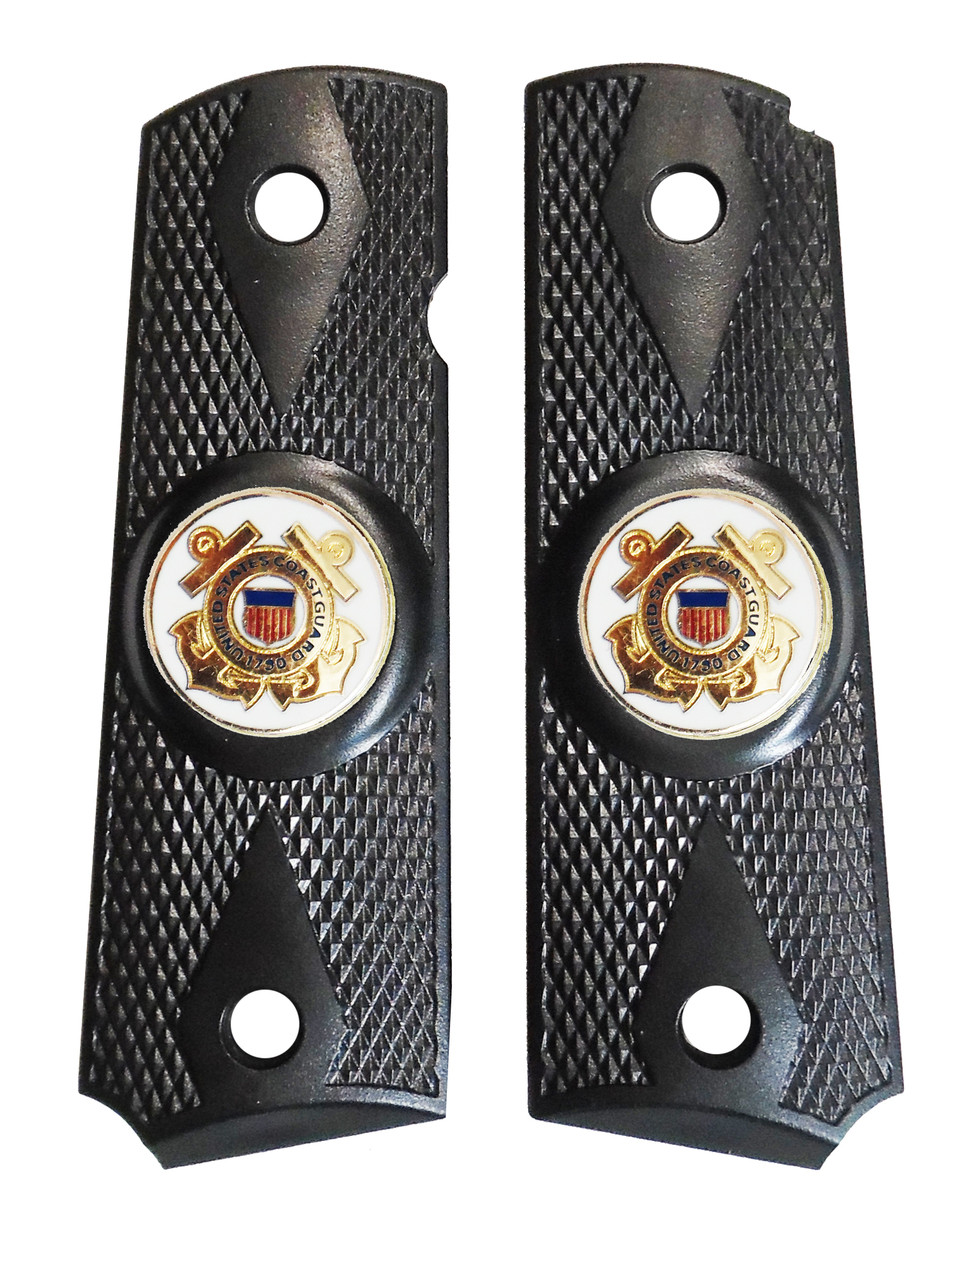 1911 Government Model US Coast Guard Emblems Set In Ebony Black Polymer Grips G52